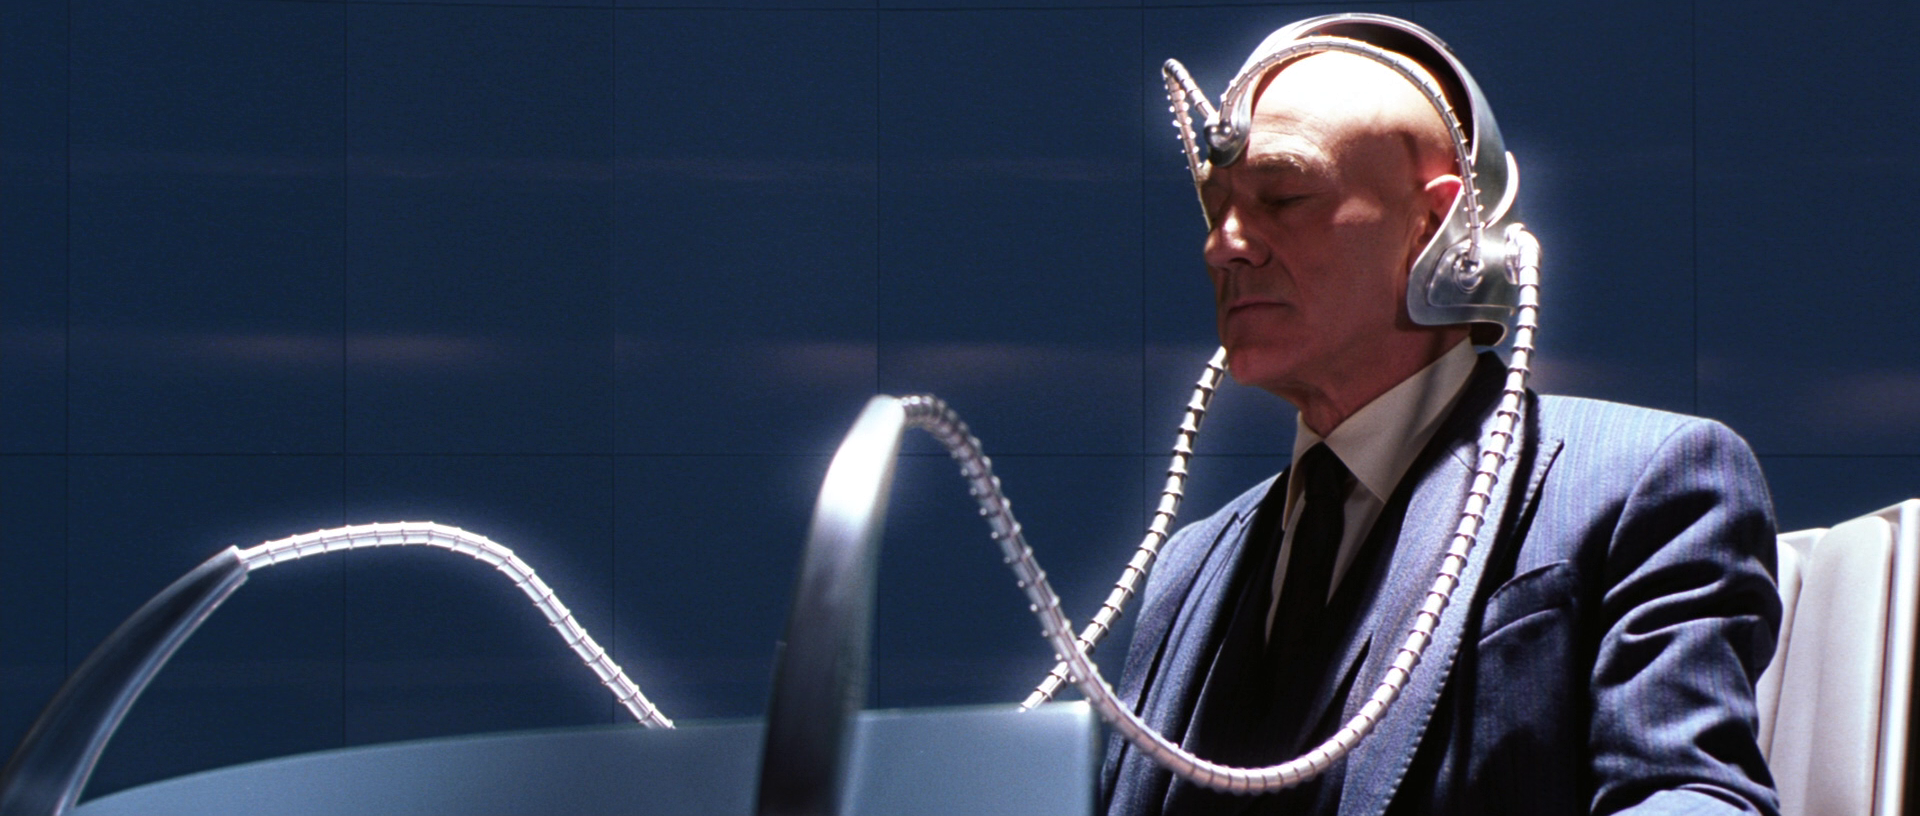 File:Cerebro dr charles xavier.png